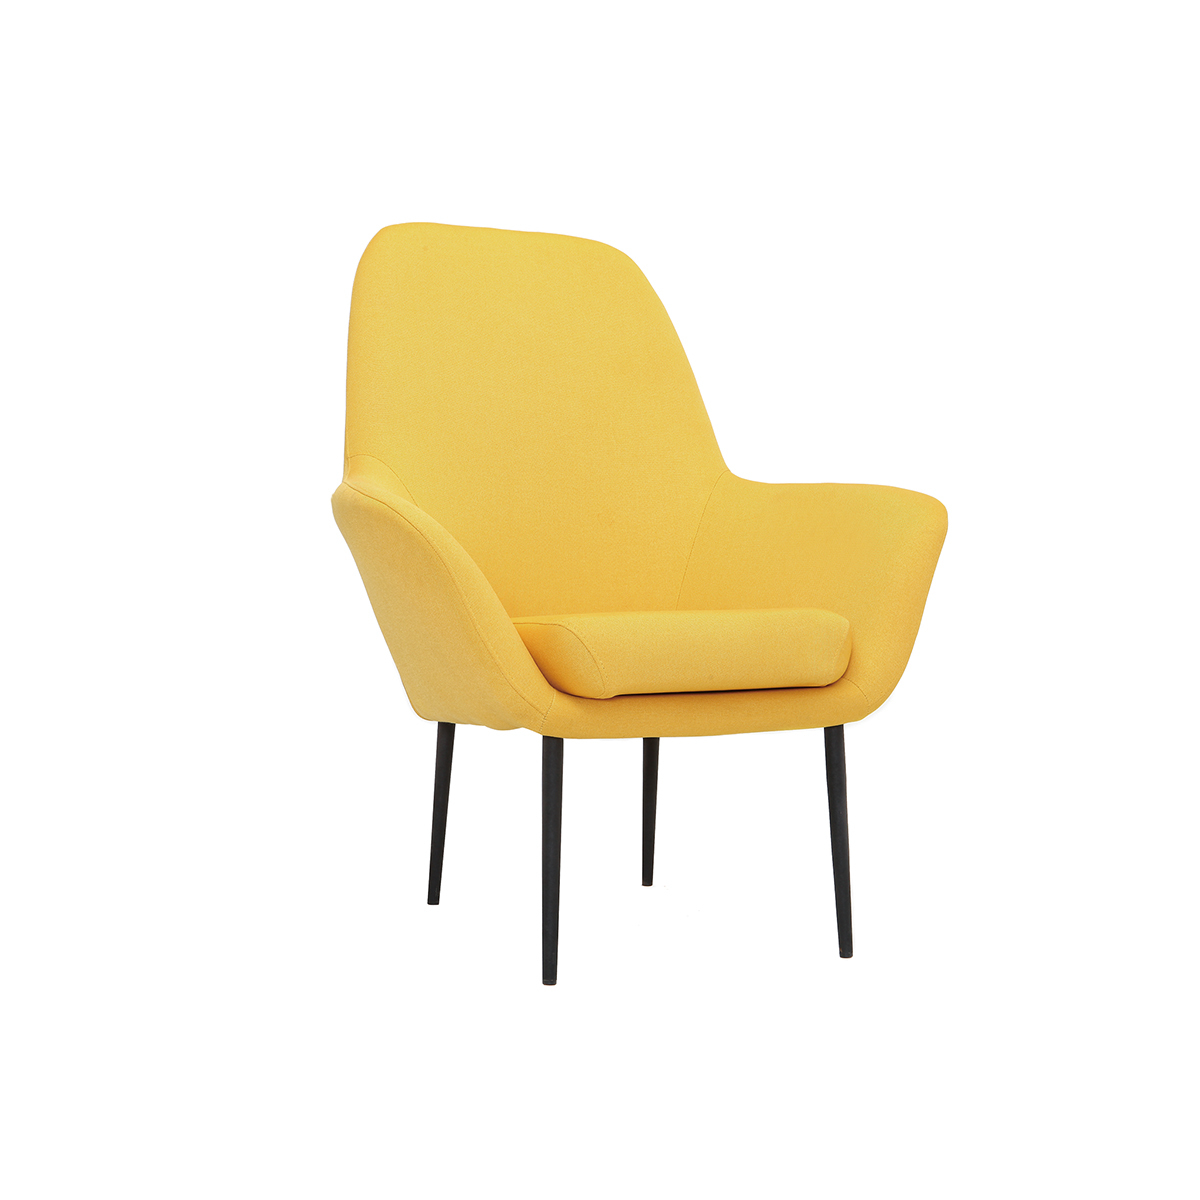 Poltrona design contemporaneo giallo OSWALD